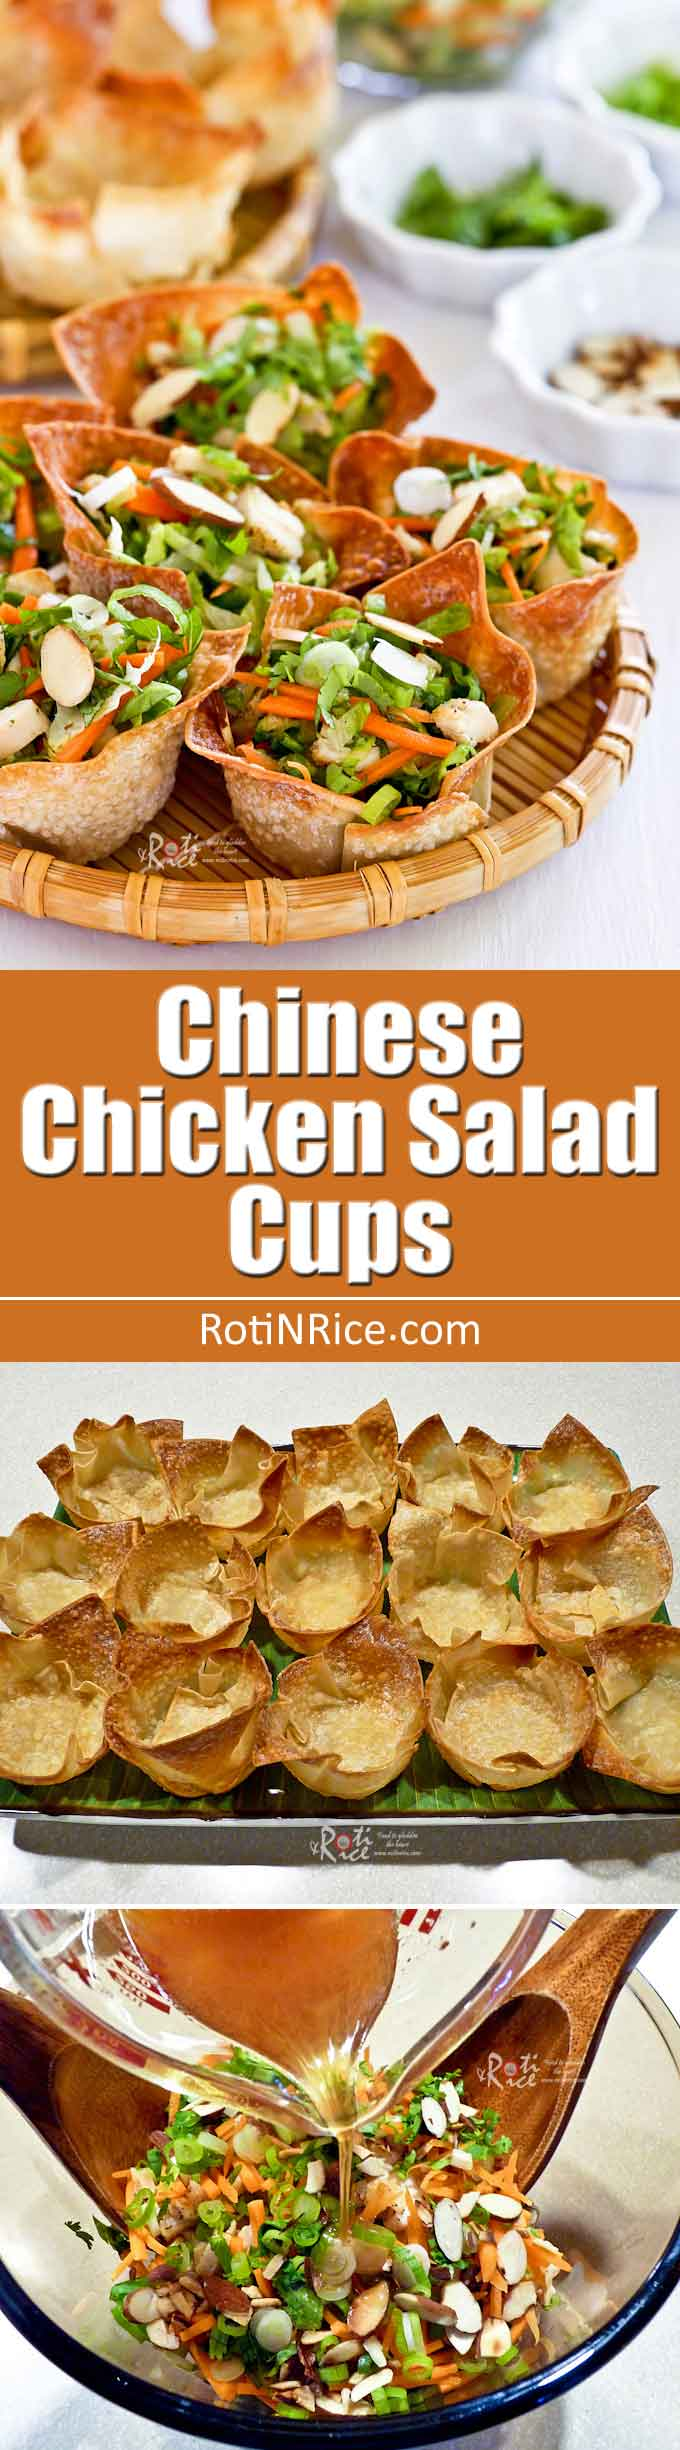 These easy to prepare Chinese Chicken Salad Cups are perfect for any social gathering. Watch them disappear as they will be everyone's favorite appetizer. | RotiNrice.com